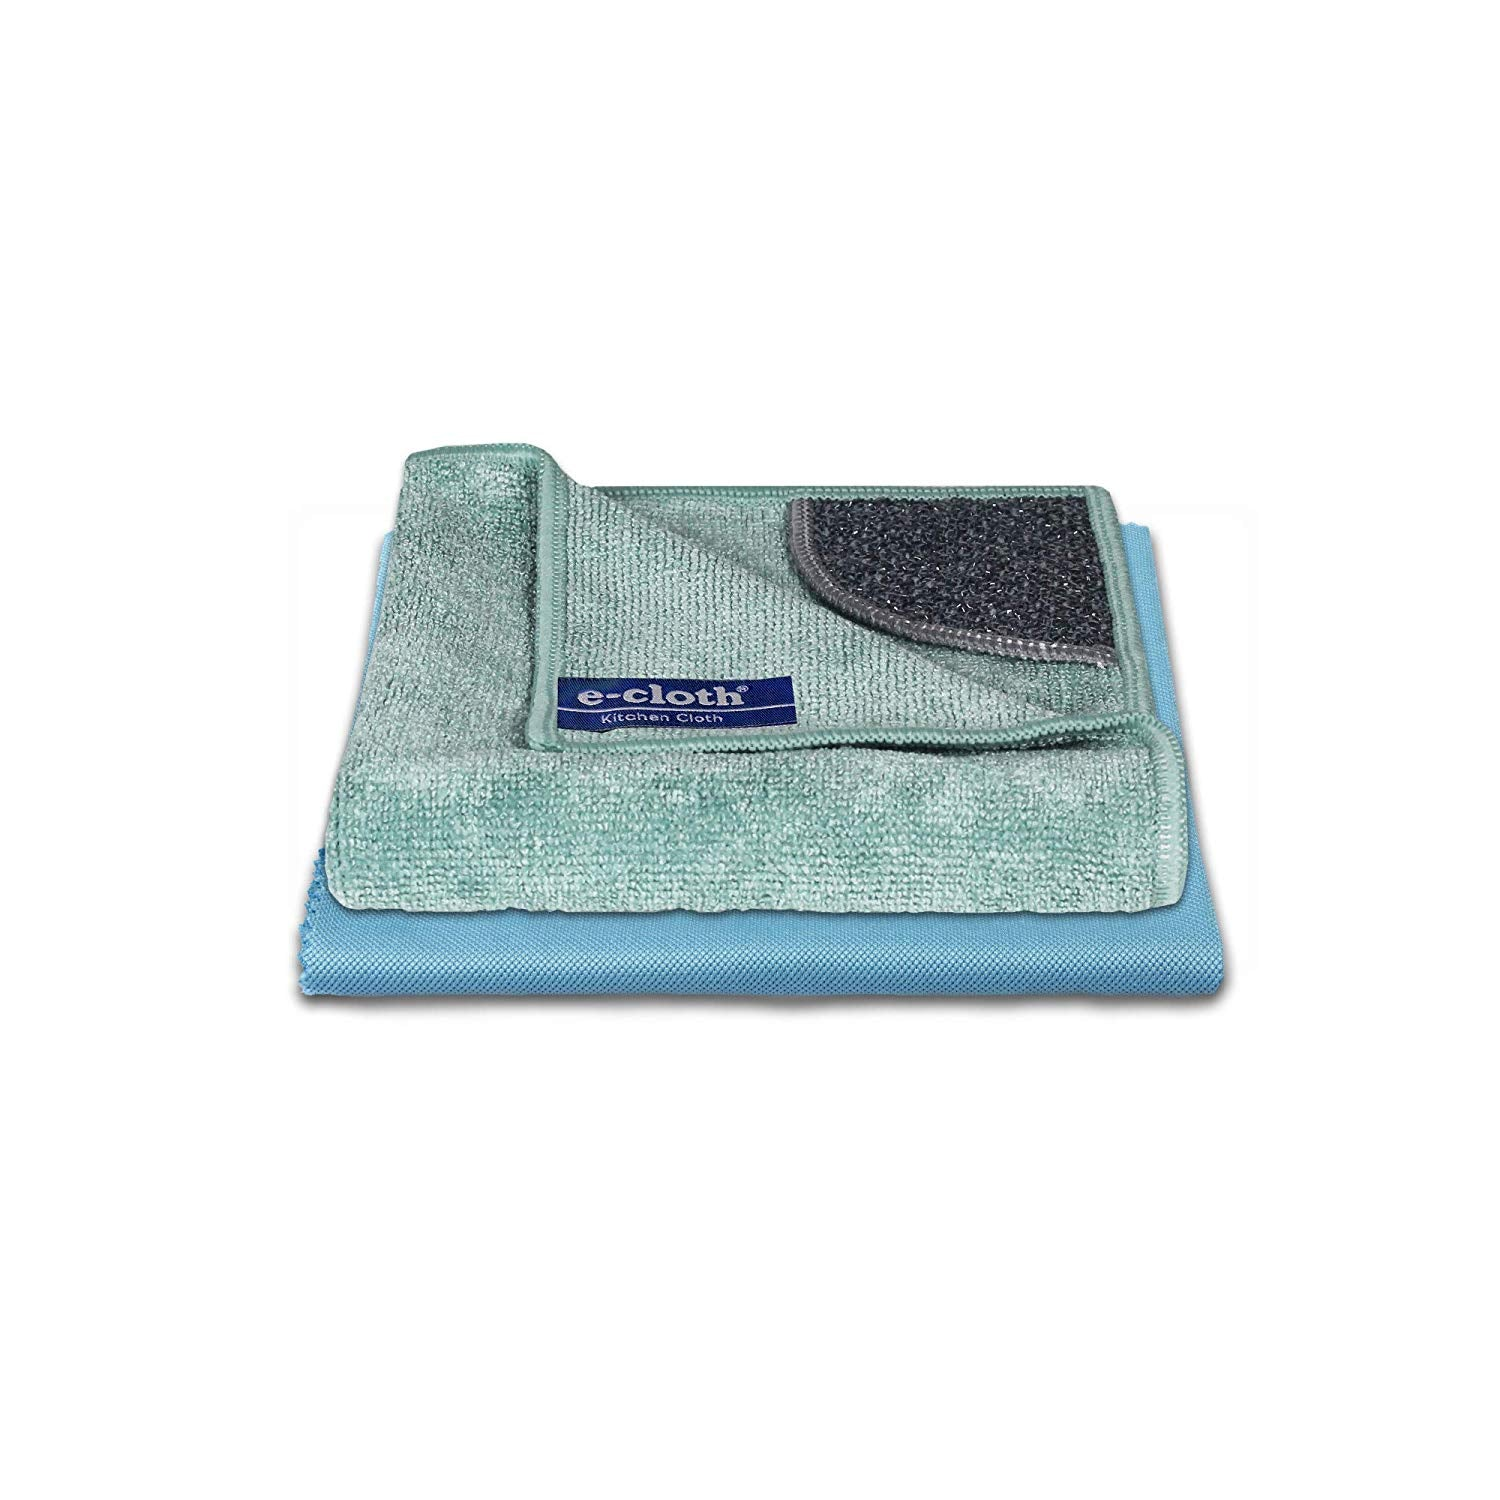 E-Cloth Window Cleaning 2 Cloths $24.99